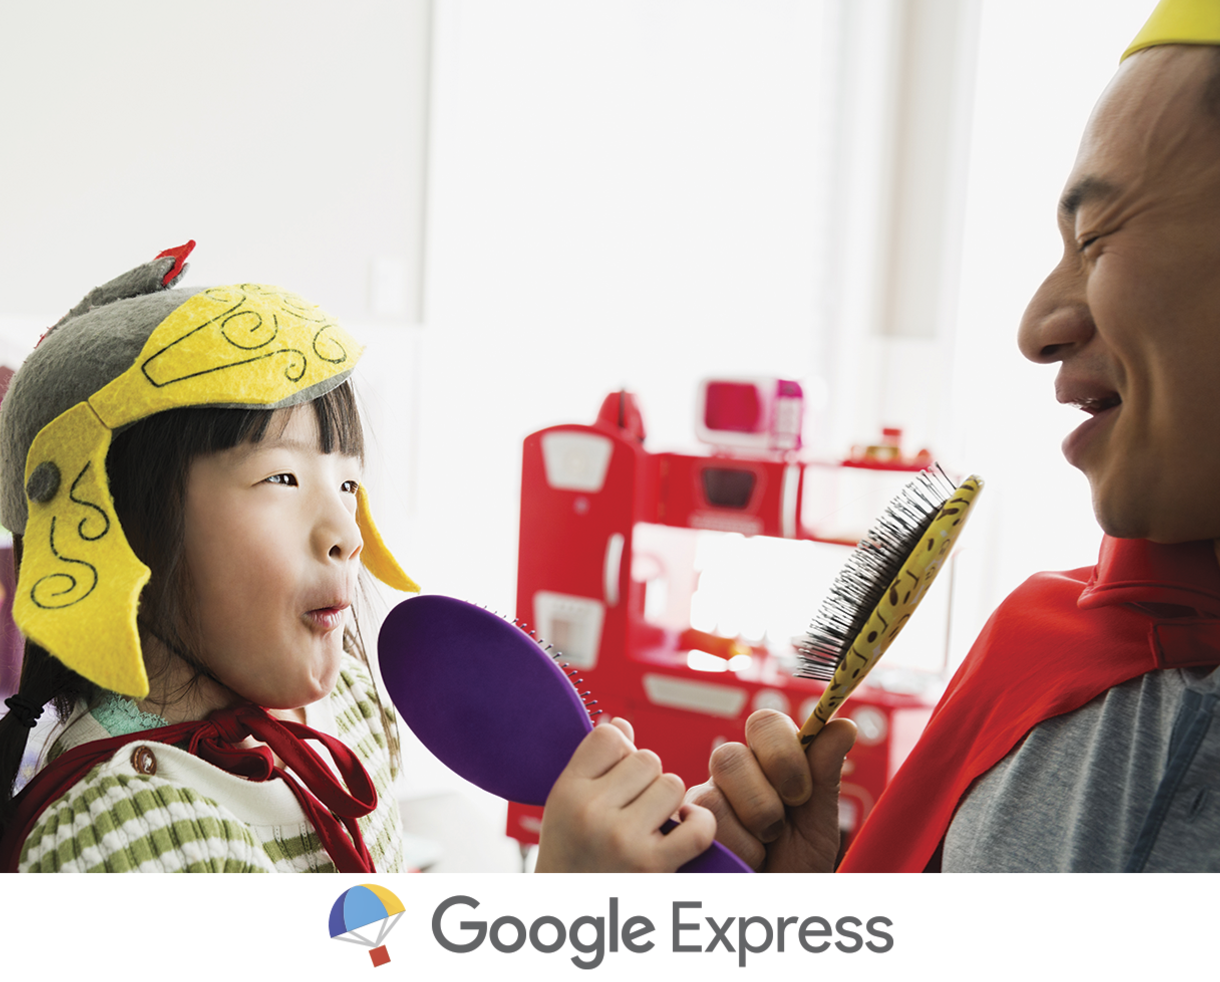 $15 Off Your First Google Express Order – Shop Costco, Walgreens, PetSmart, and Other Favorite Stores